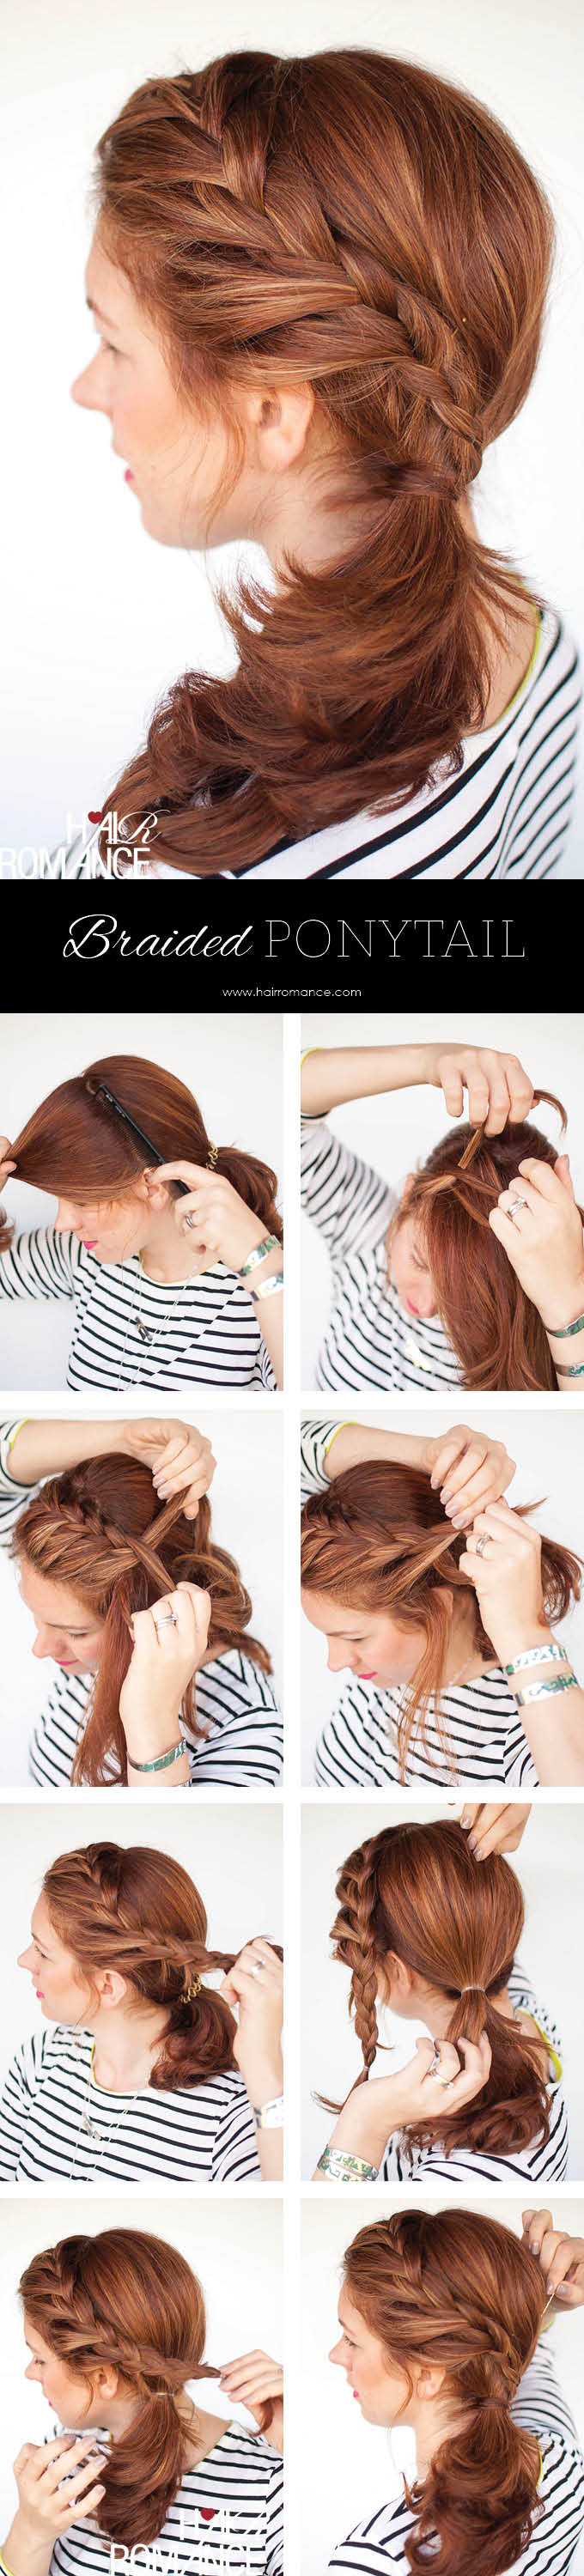 Weekend Style Braided Ponytail Tutorial Hair Romance